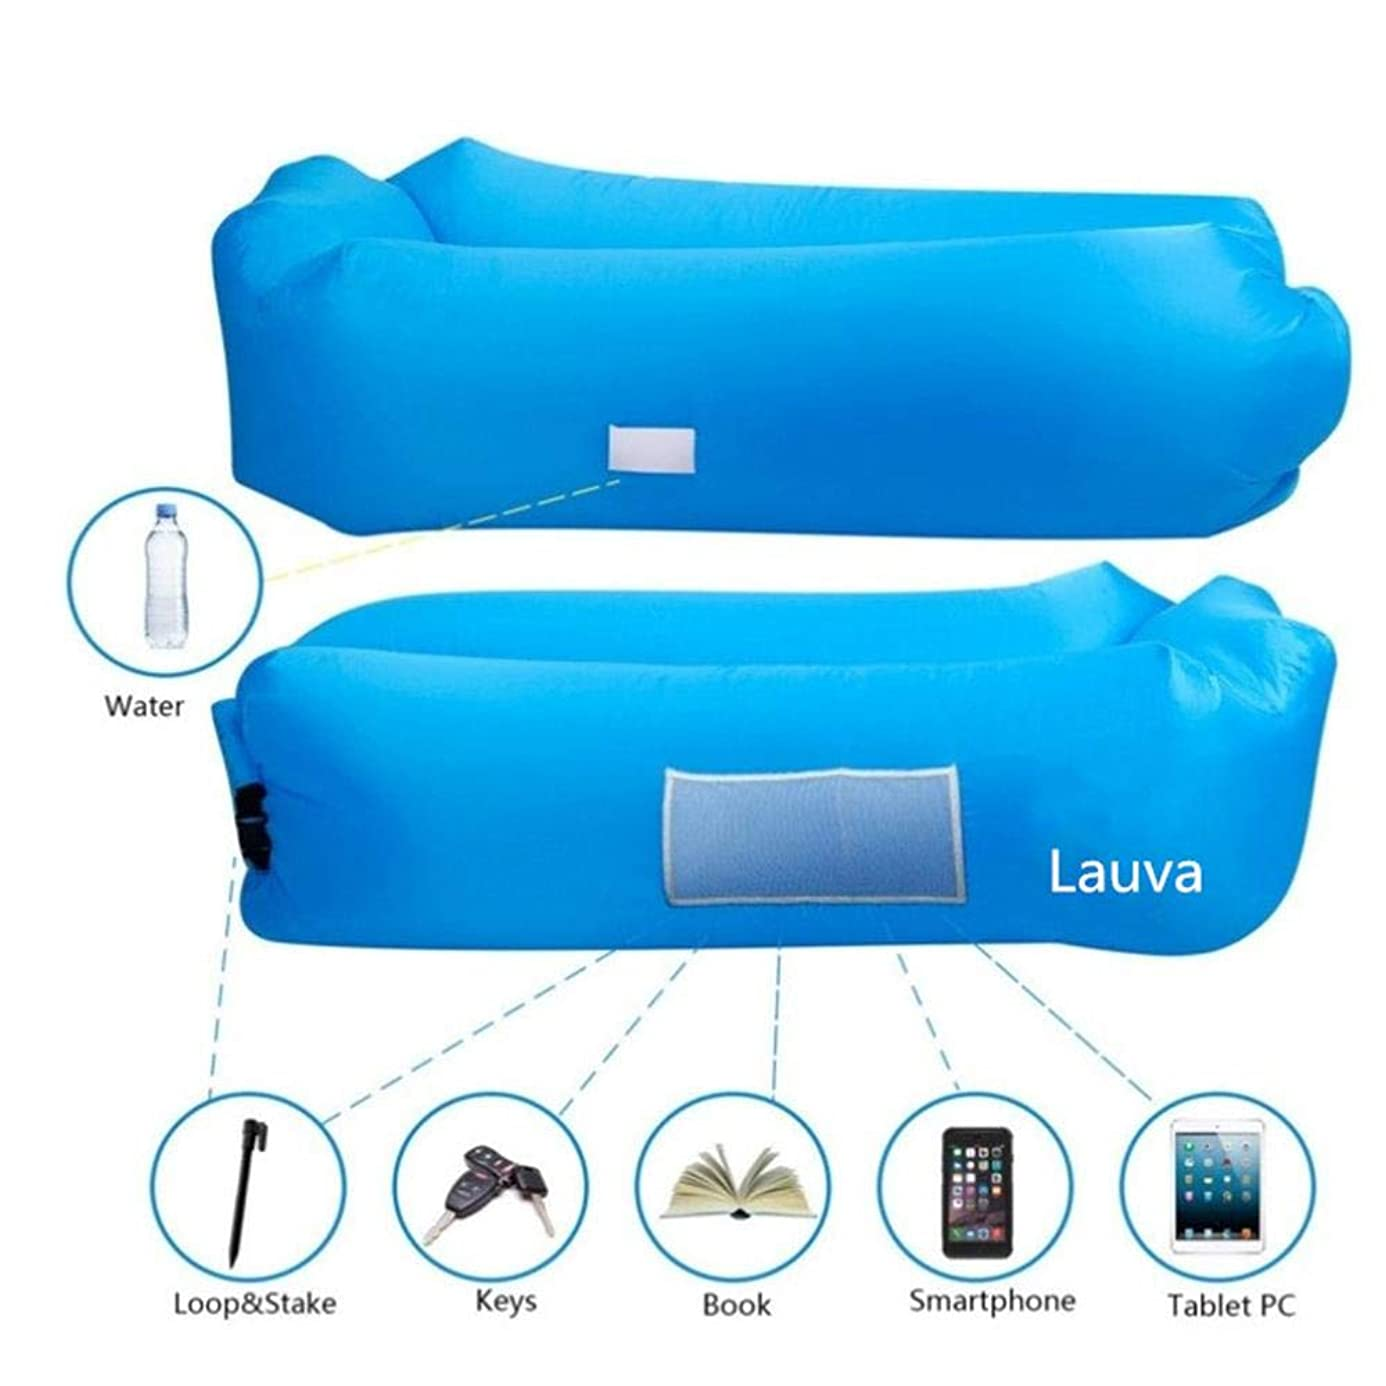 Lauva Air Sofa, Inflatable Lazy Lounger with Headrest,Self-Inflating Sleeping Mattress Couch Pad Carrying Bag Bed for Backyard Beach Camping,Picnic,Travel,Park Pool- Hold Up to 500lbs